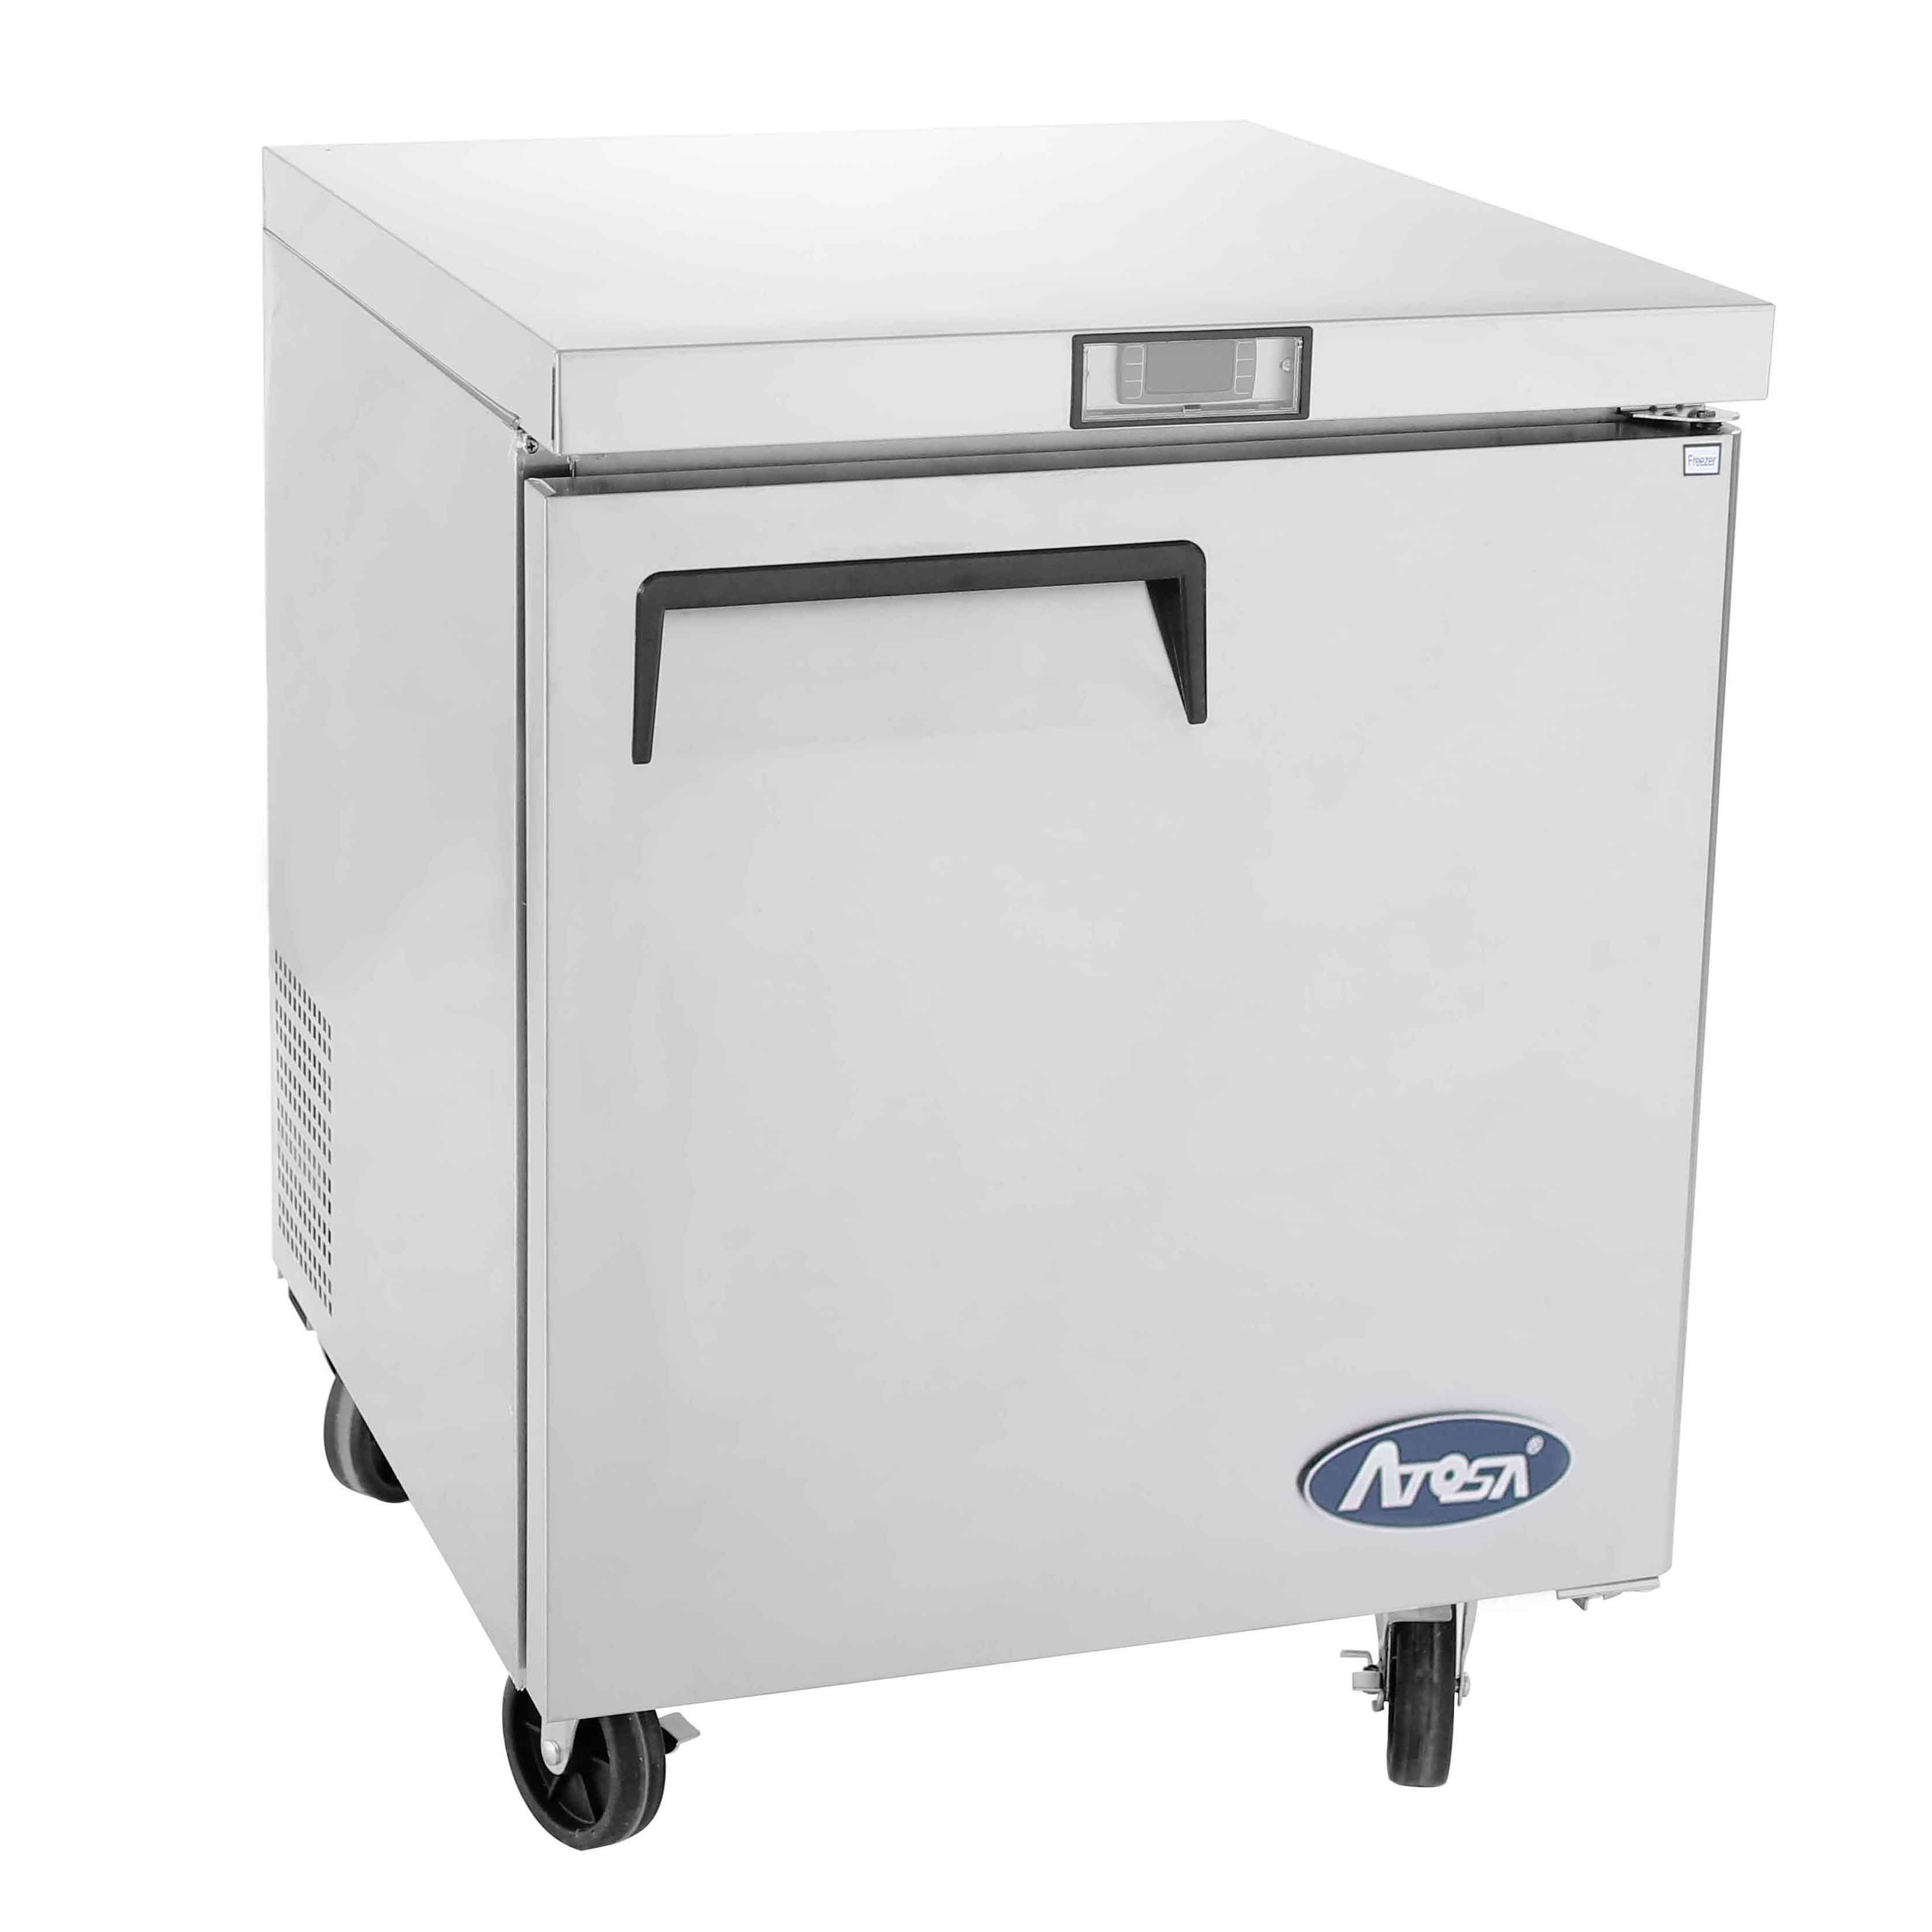 Atosa USA MGF8405GR freezer, undercounter, reach-in